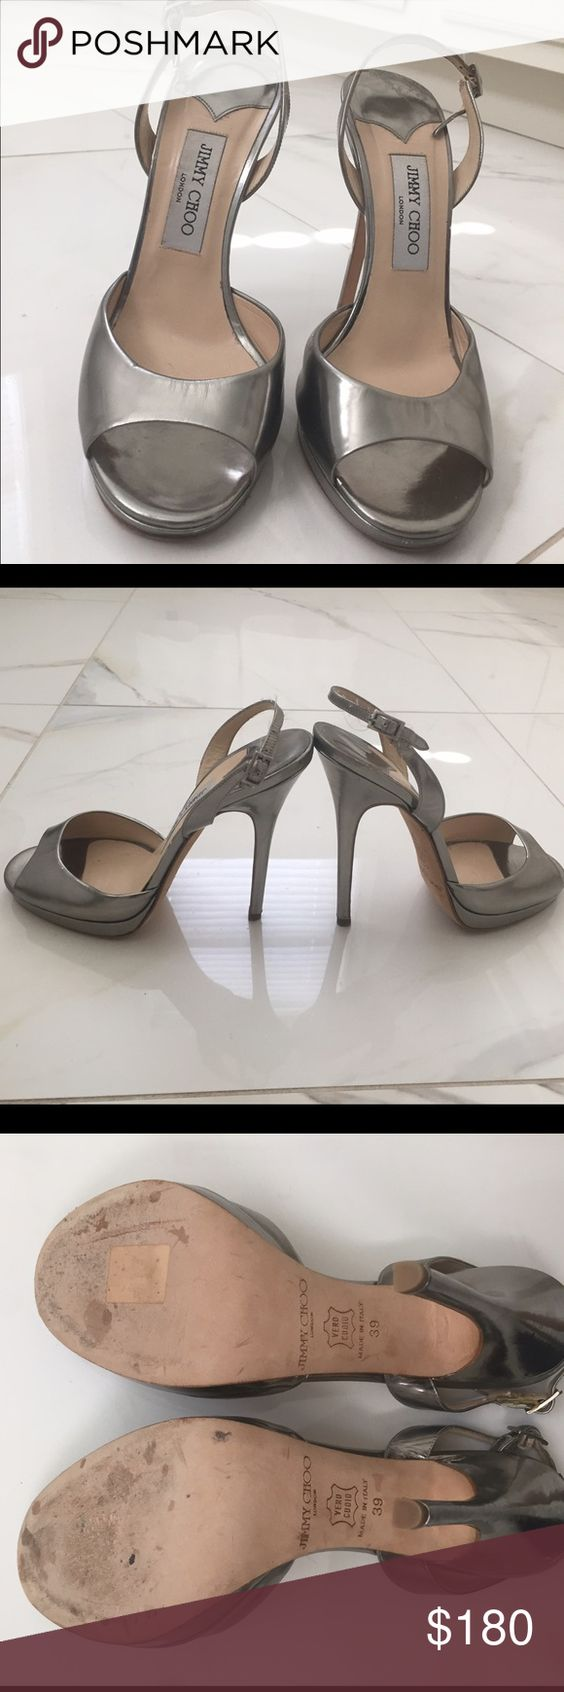 Authentic Jimmy Choo metallic silver stilettos Authentic Jimmy Choo platform heels. Size 39. Very good shape- purchased at sample sale and I have only worn once as the heel is too high for me. Some dentations back of heels (see pictures). Jimmy Choo Shoes Heels